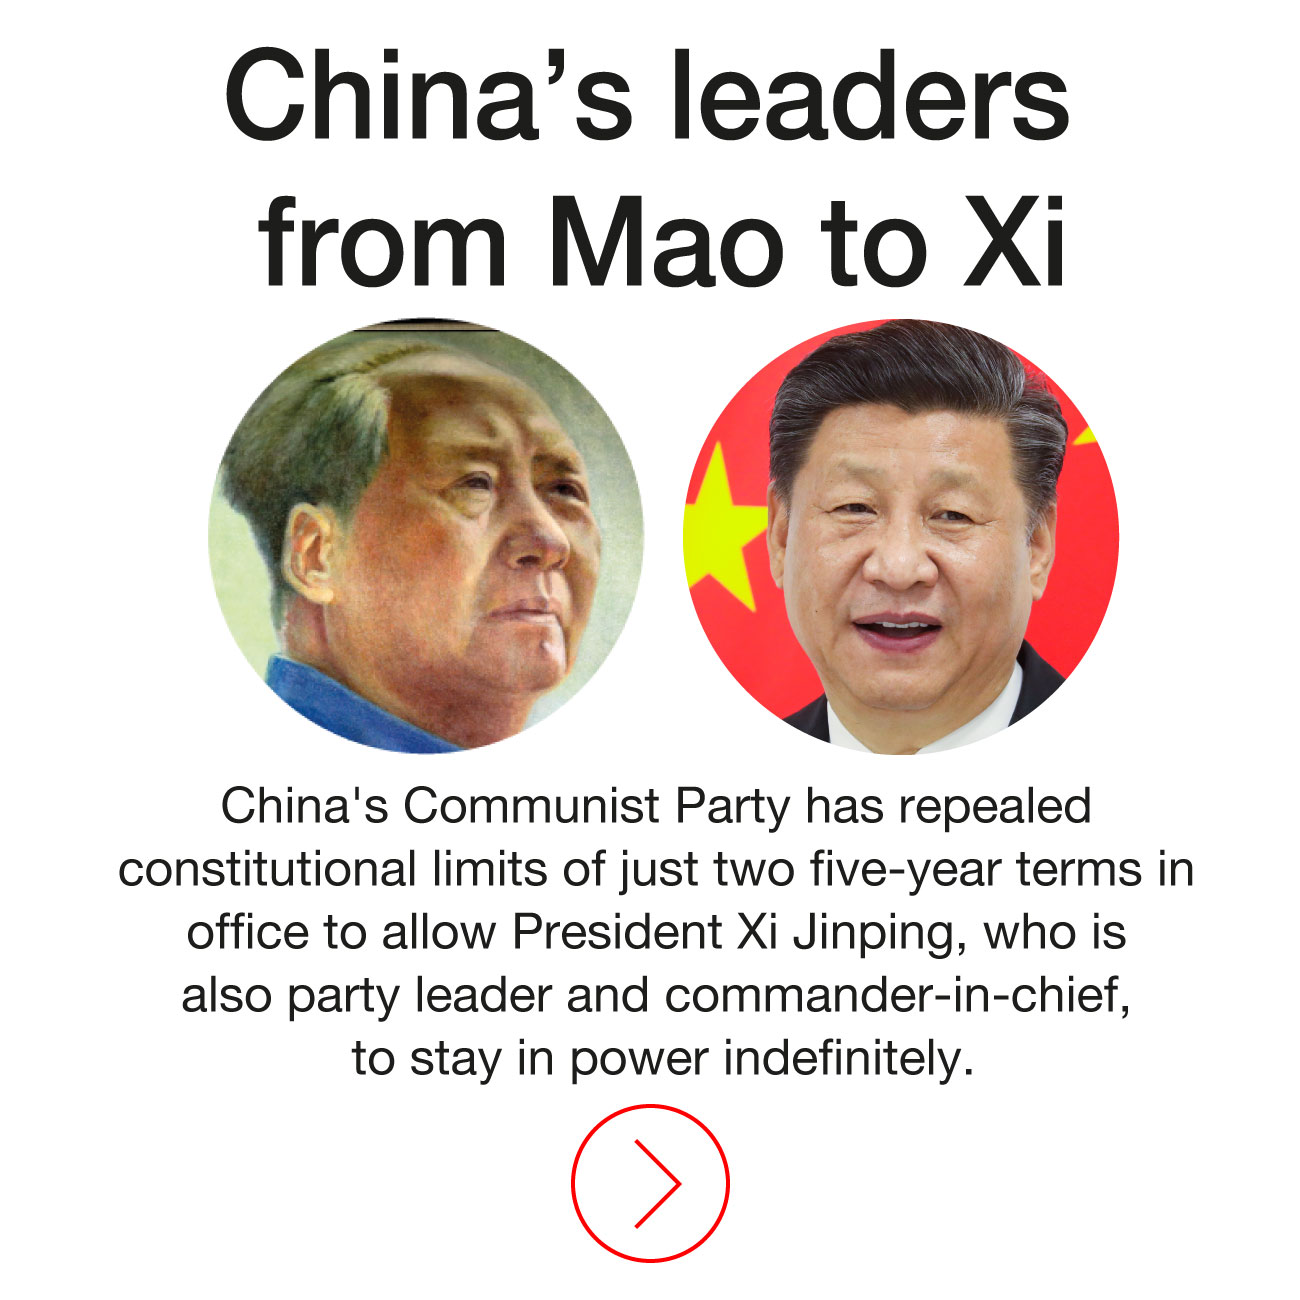 NED-174-China's leaders from Mao to Xi - 0